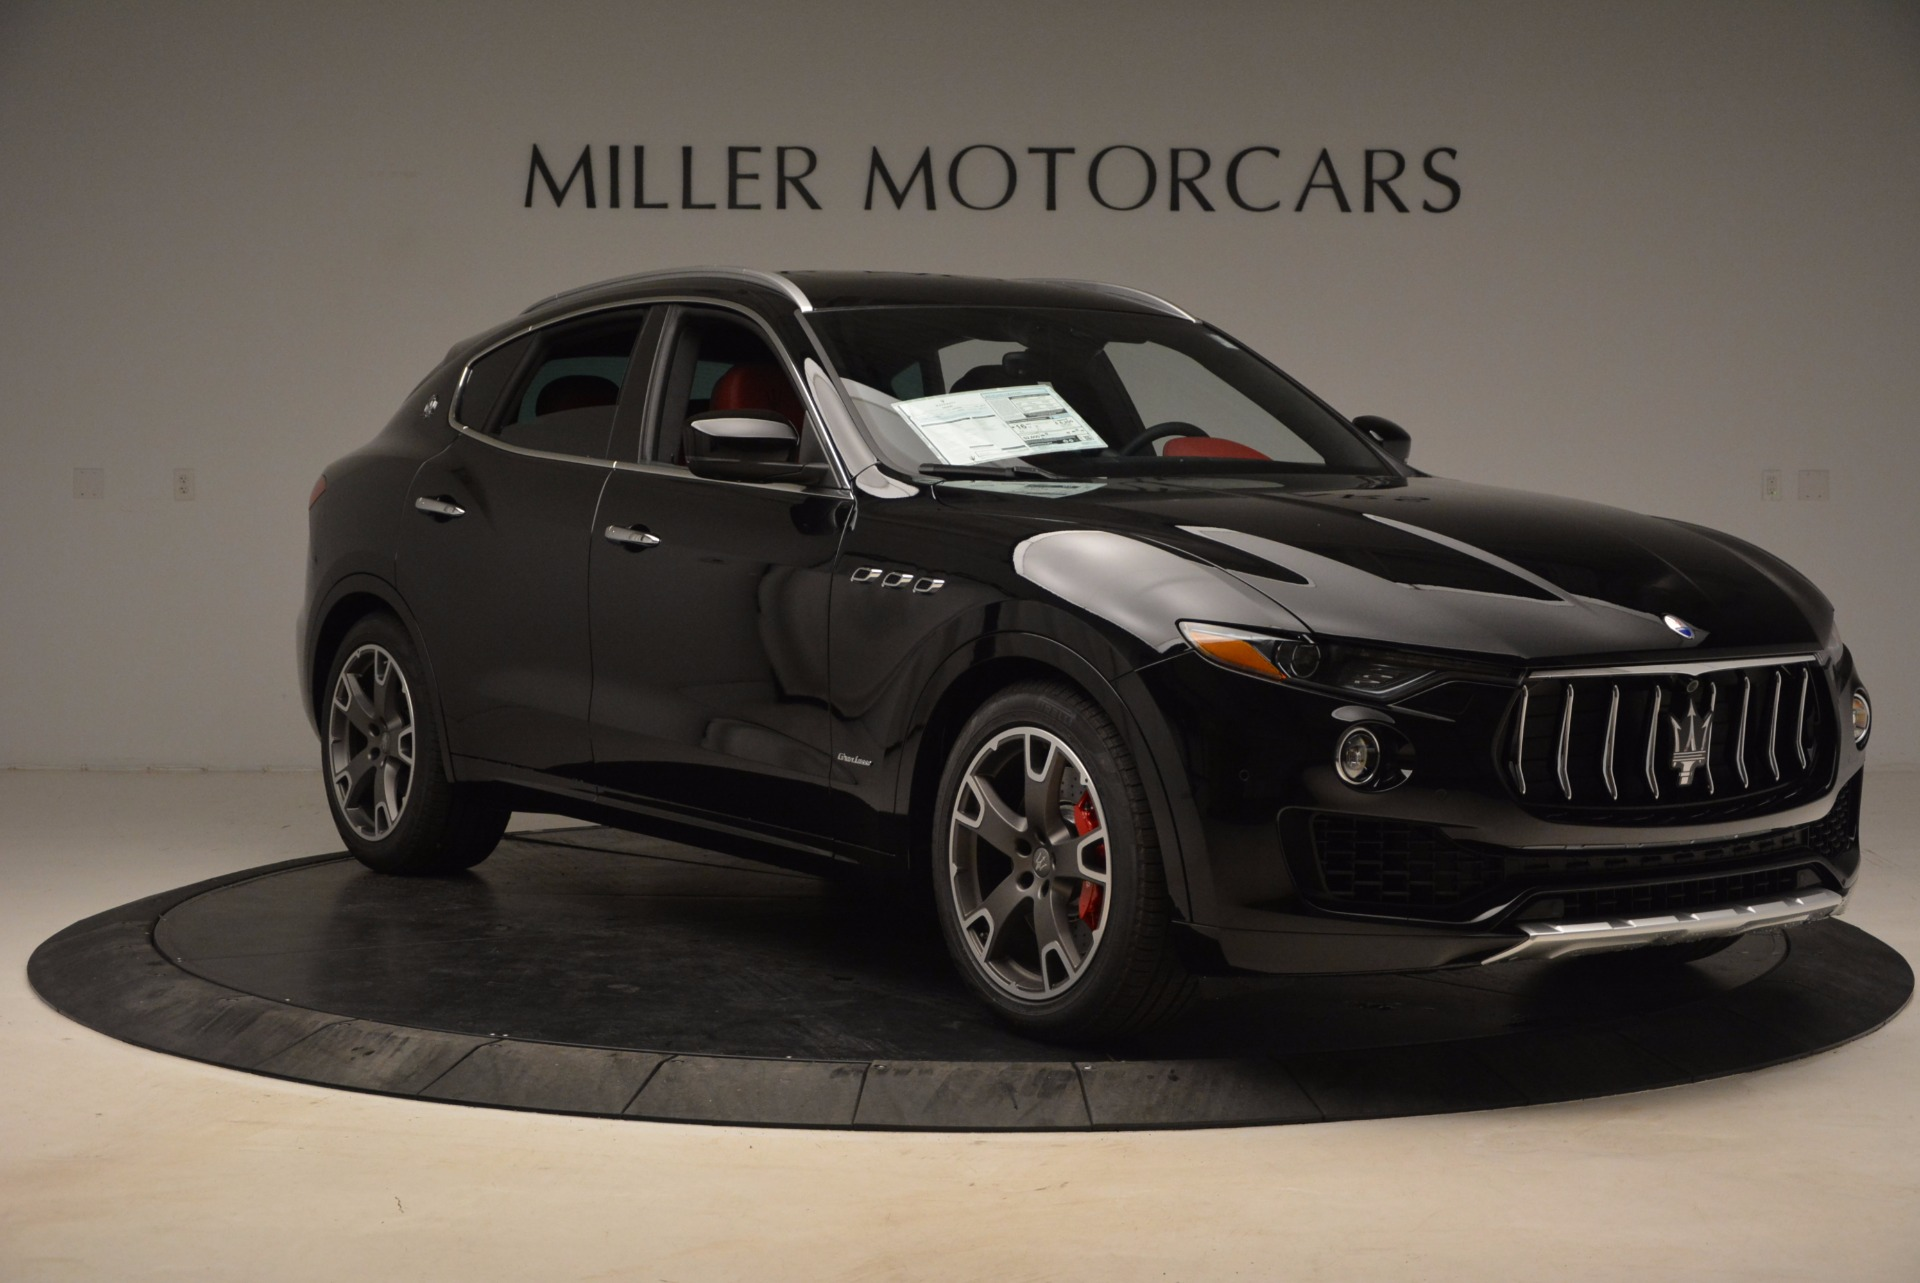 New 2018 Maserati Levante S Q4 GranLusso For Sale In Westport, CT 1613_p11